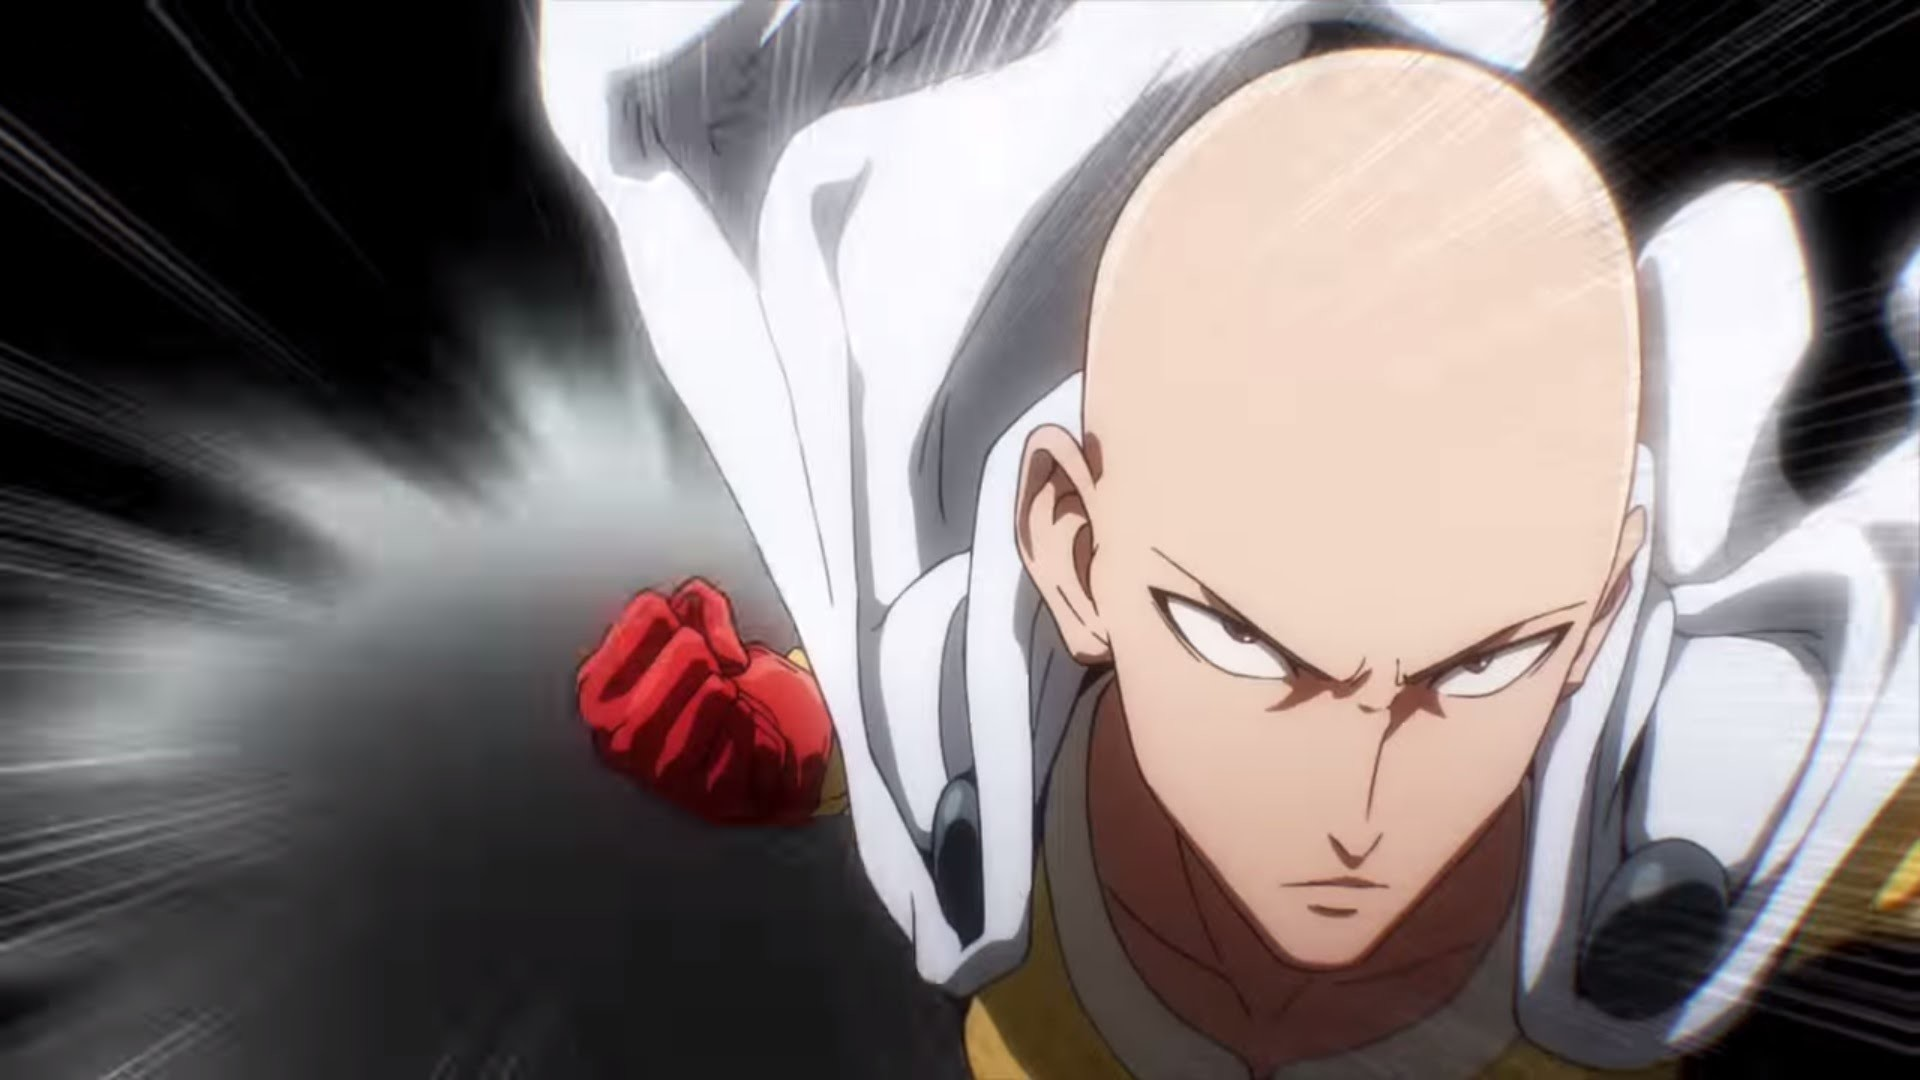 One-Punch-Man-ready-for-punch-wallpaper-HD